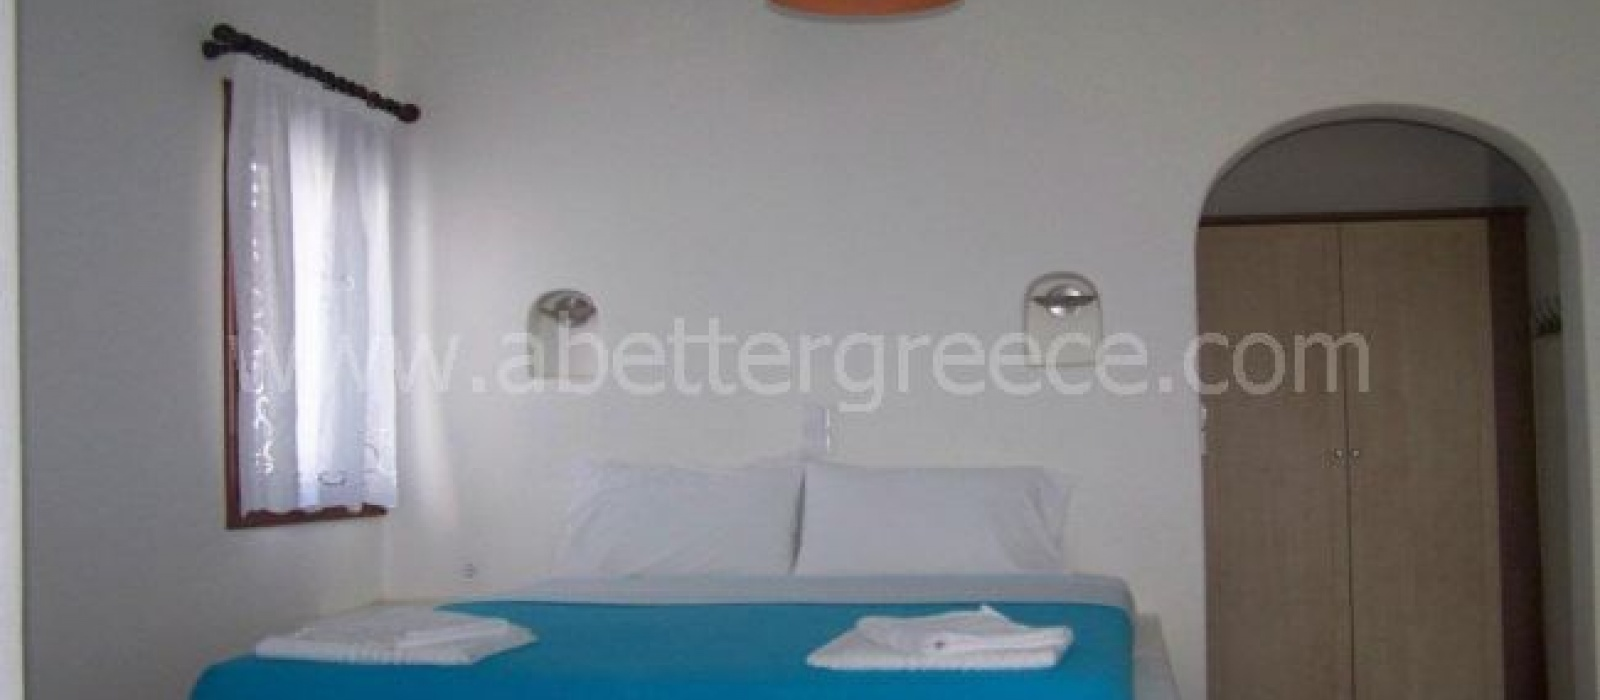 1 Bedrooms, Apartment, Vacation Rental, 1 Bathrooms, Listing ID 1175, Donnousa, Greece,